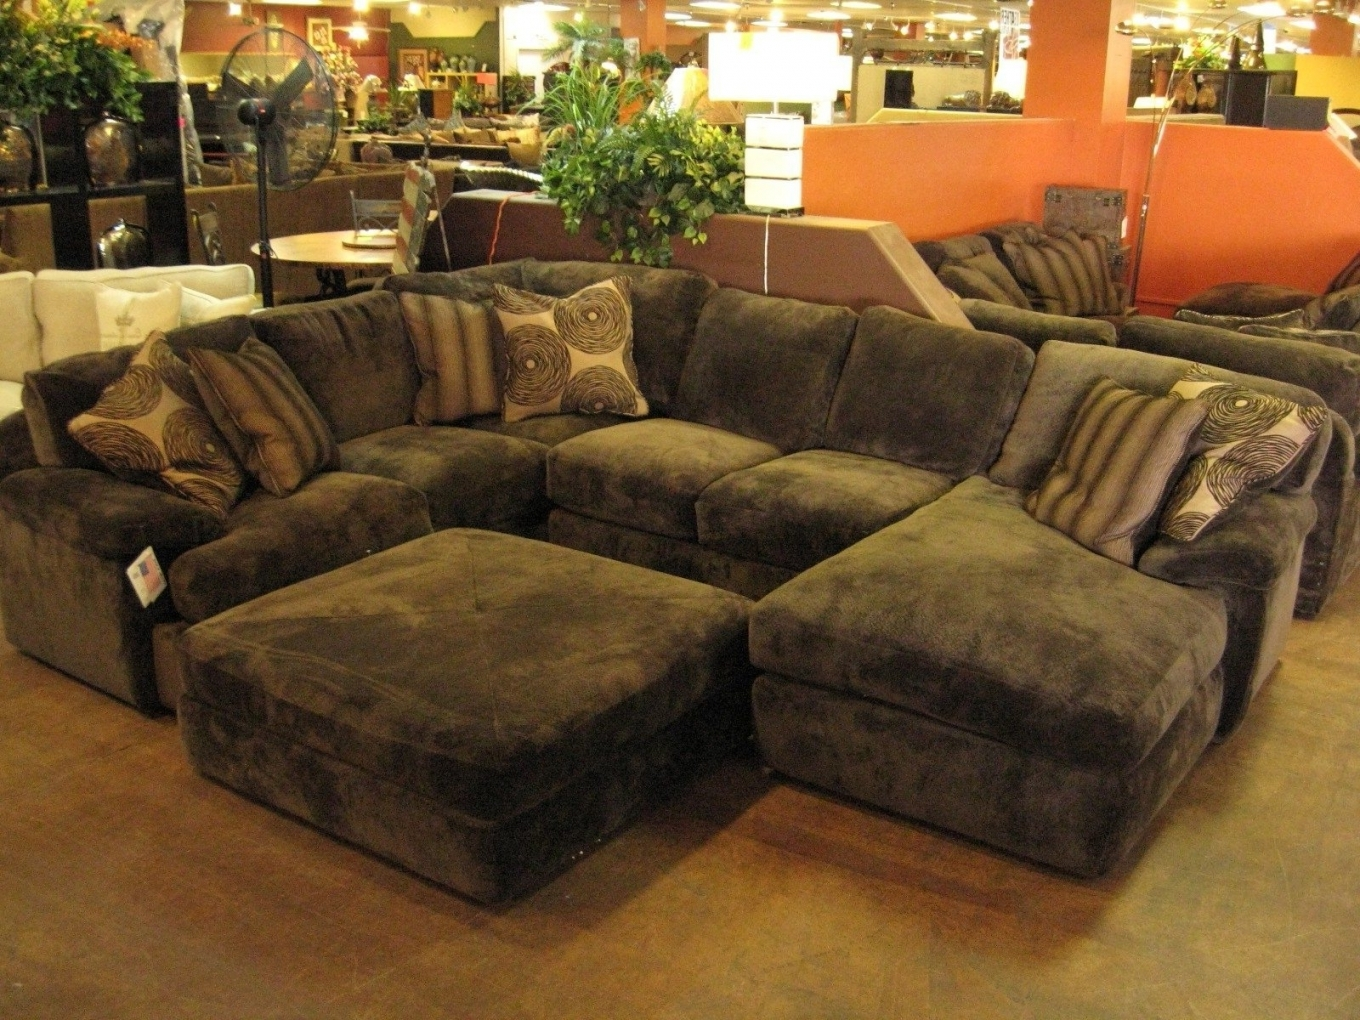 Best Comfy Sectional Sofas 18 For Your Sofas And Couches Ideas regarding Latest Las Vegas Sectional Sofas